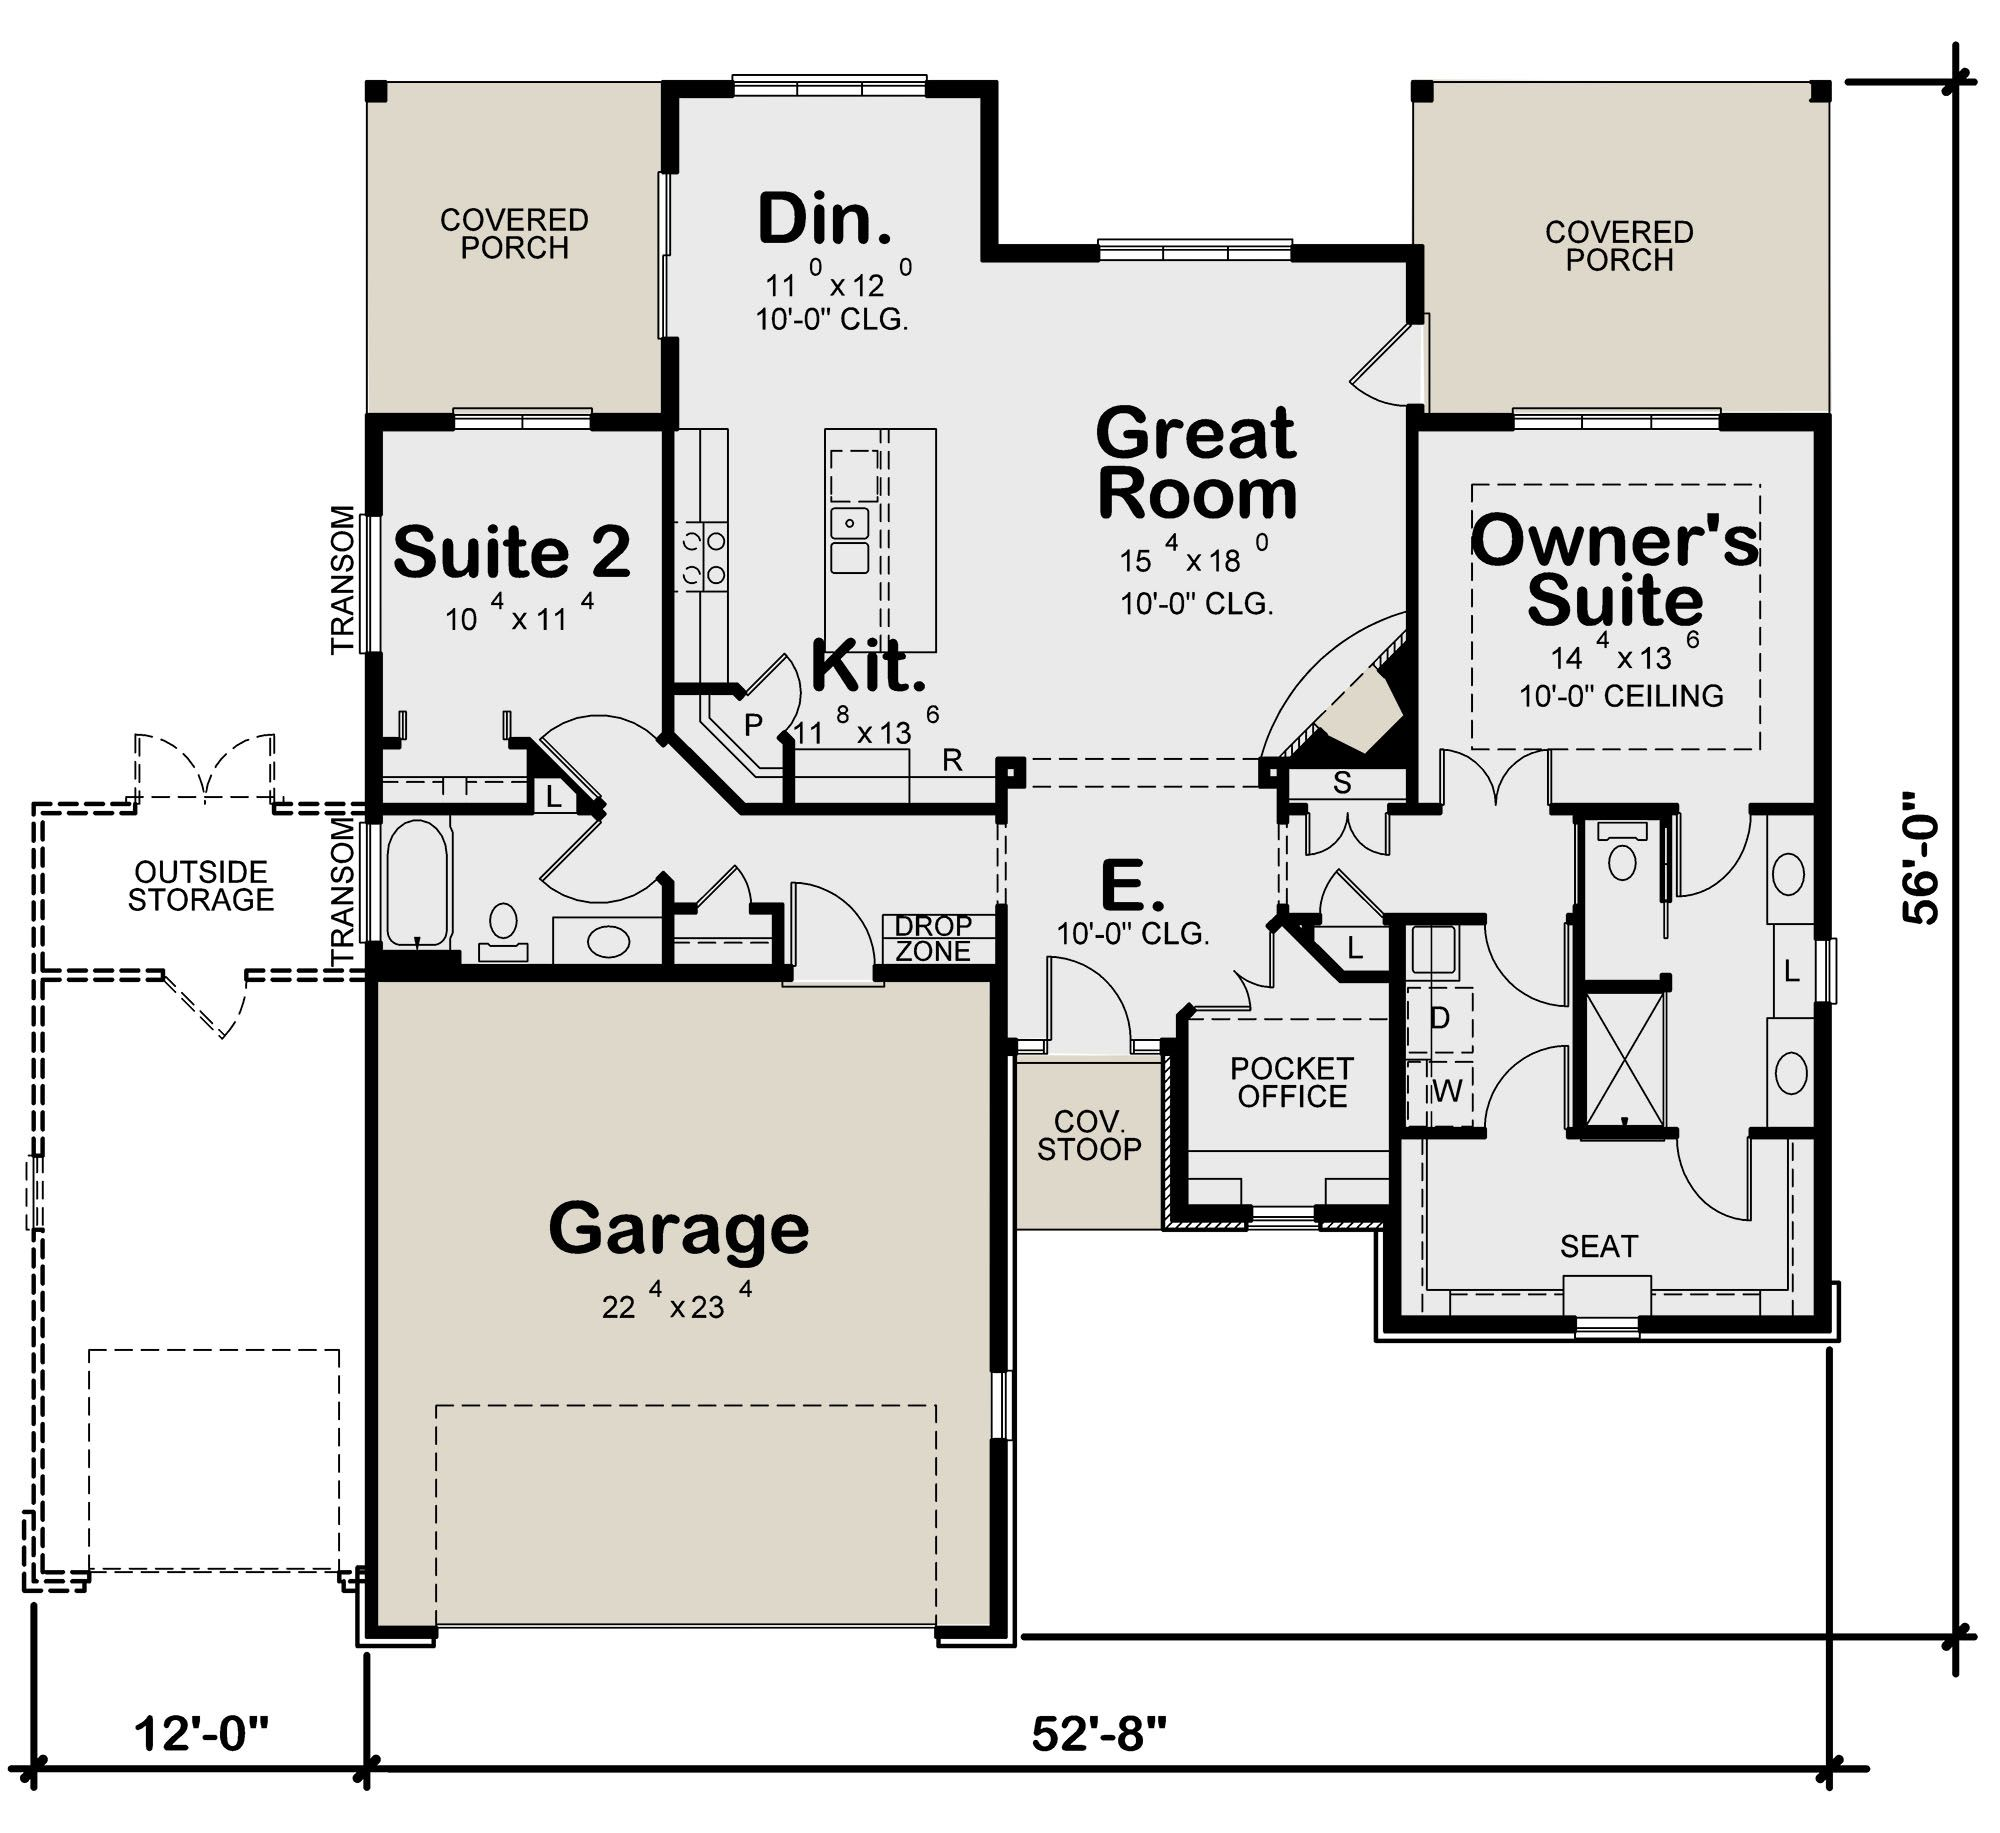 House Plan 402 01584 Craftsman Plan 1 595 Square Feet 2 Bedrooms 2 Bathrooms With Images Rustic House Plans Craftsman Style House Plans Craftsman House Plans